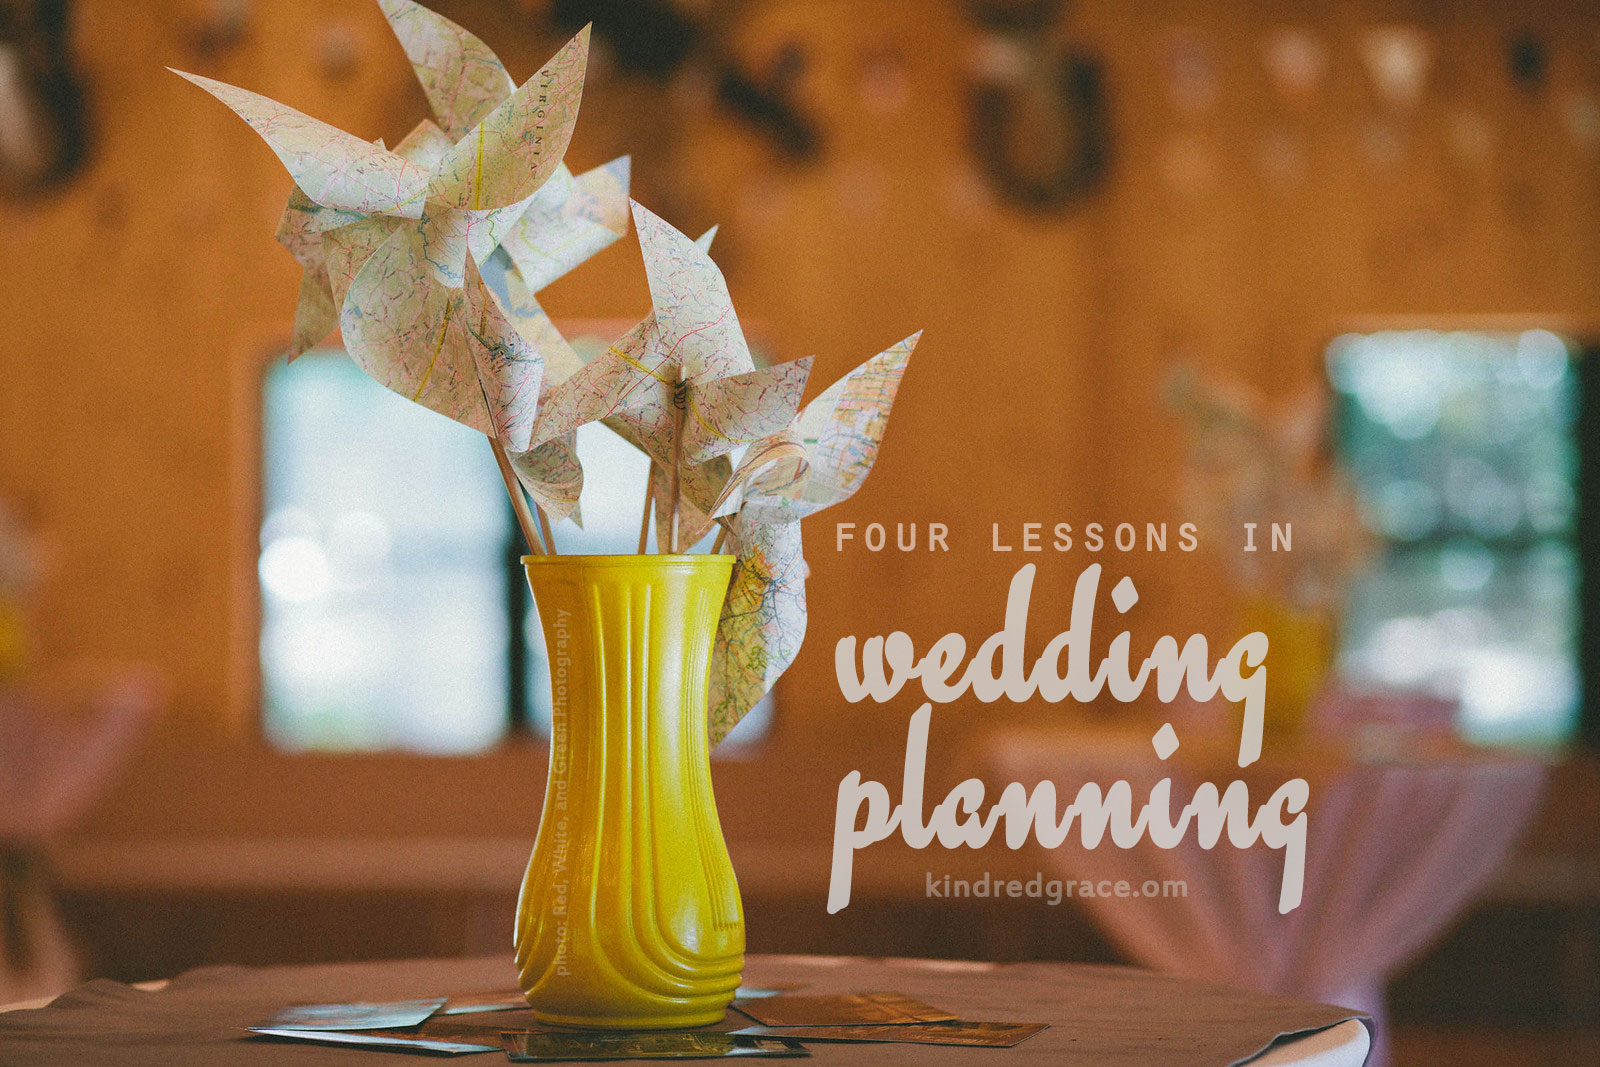 4 Lessons in Wedding Planning